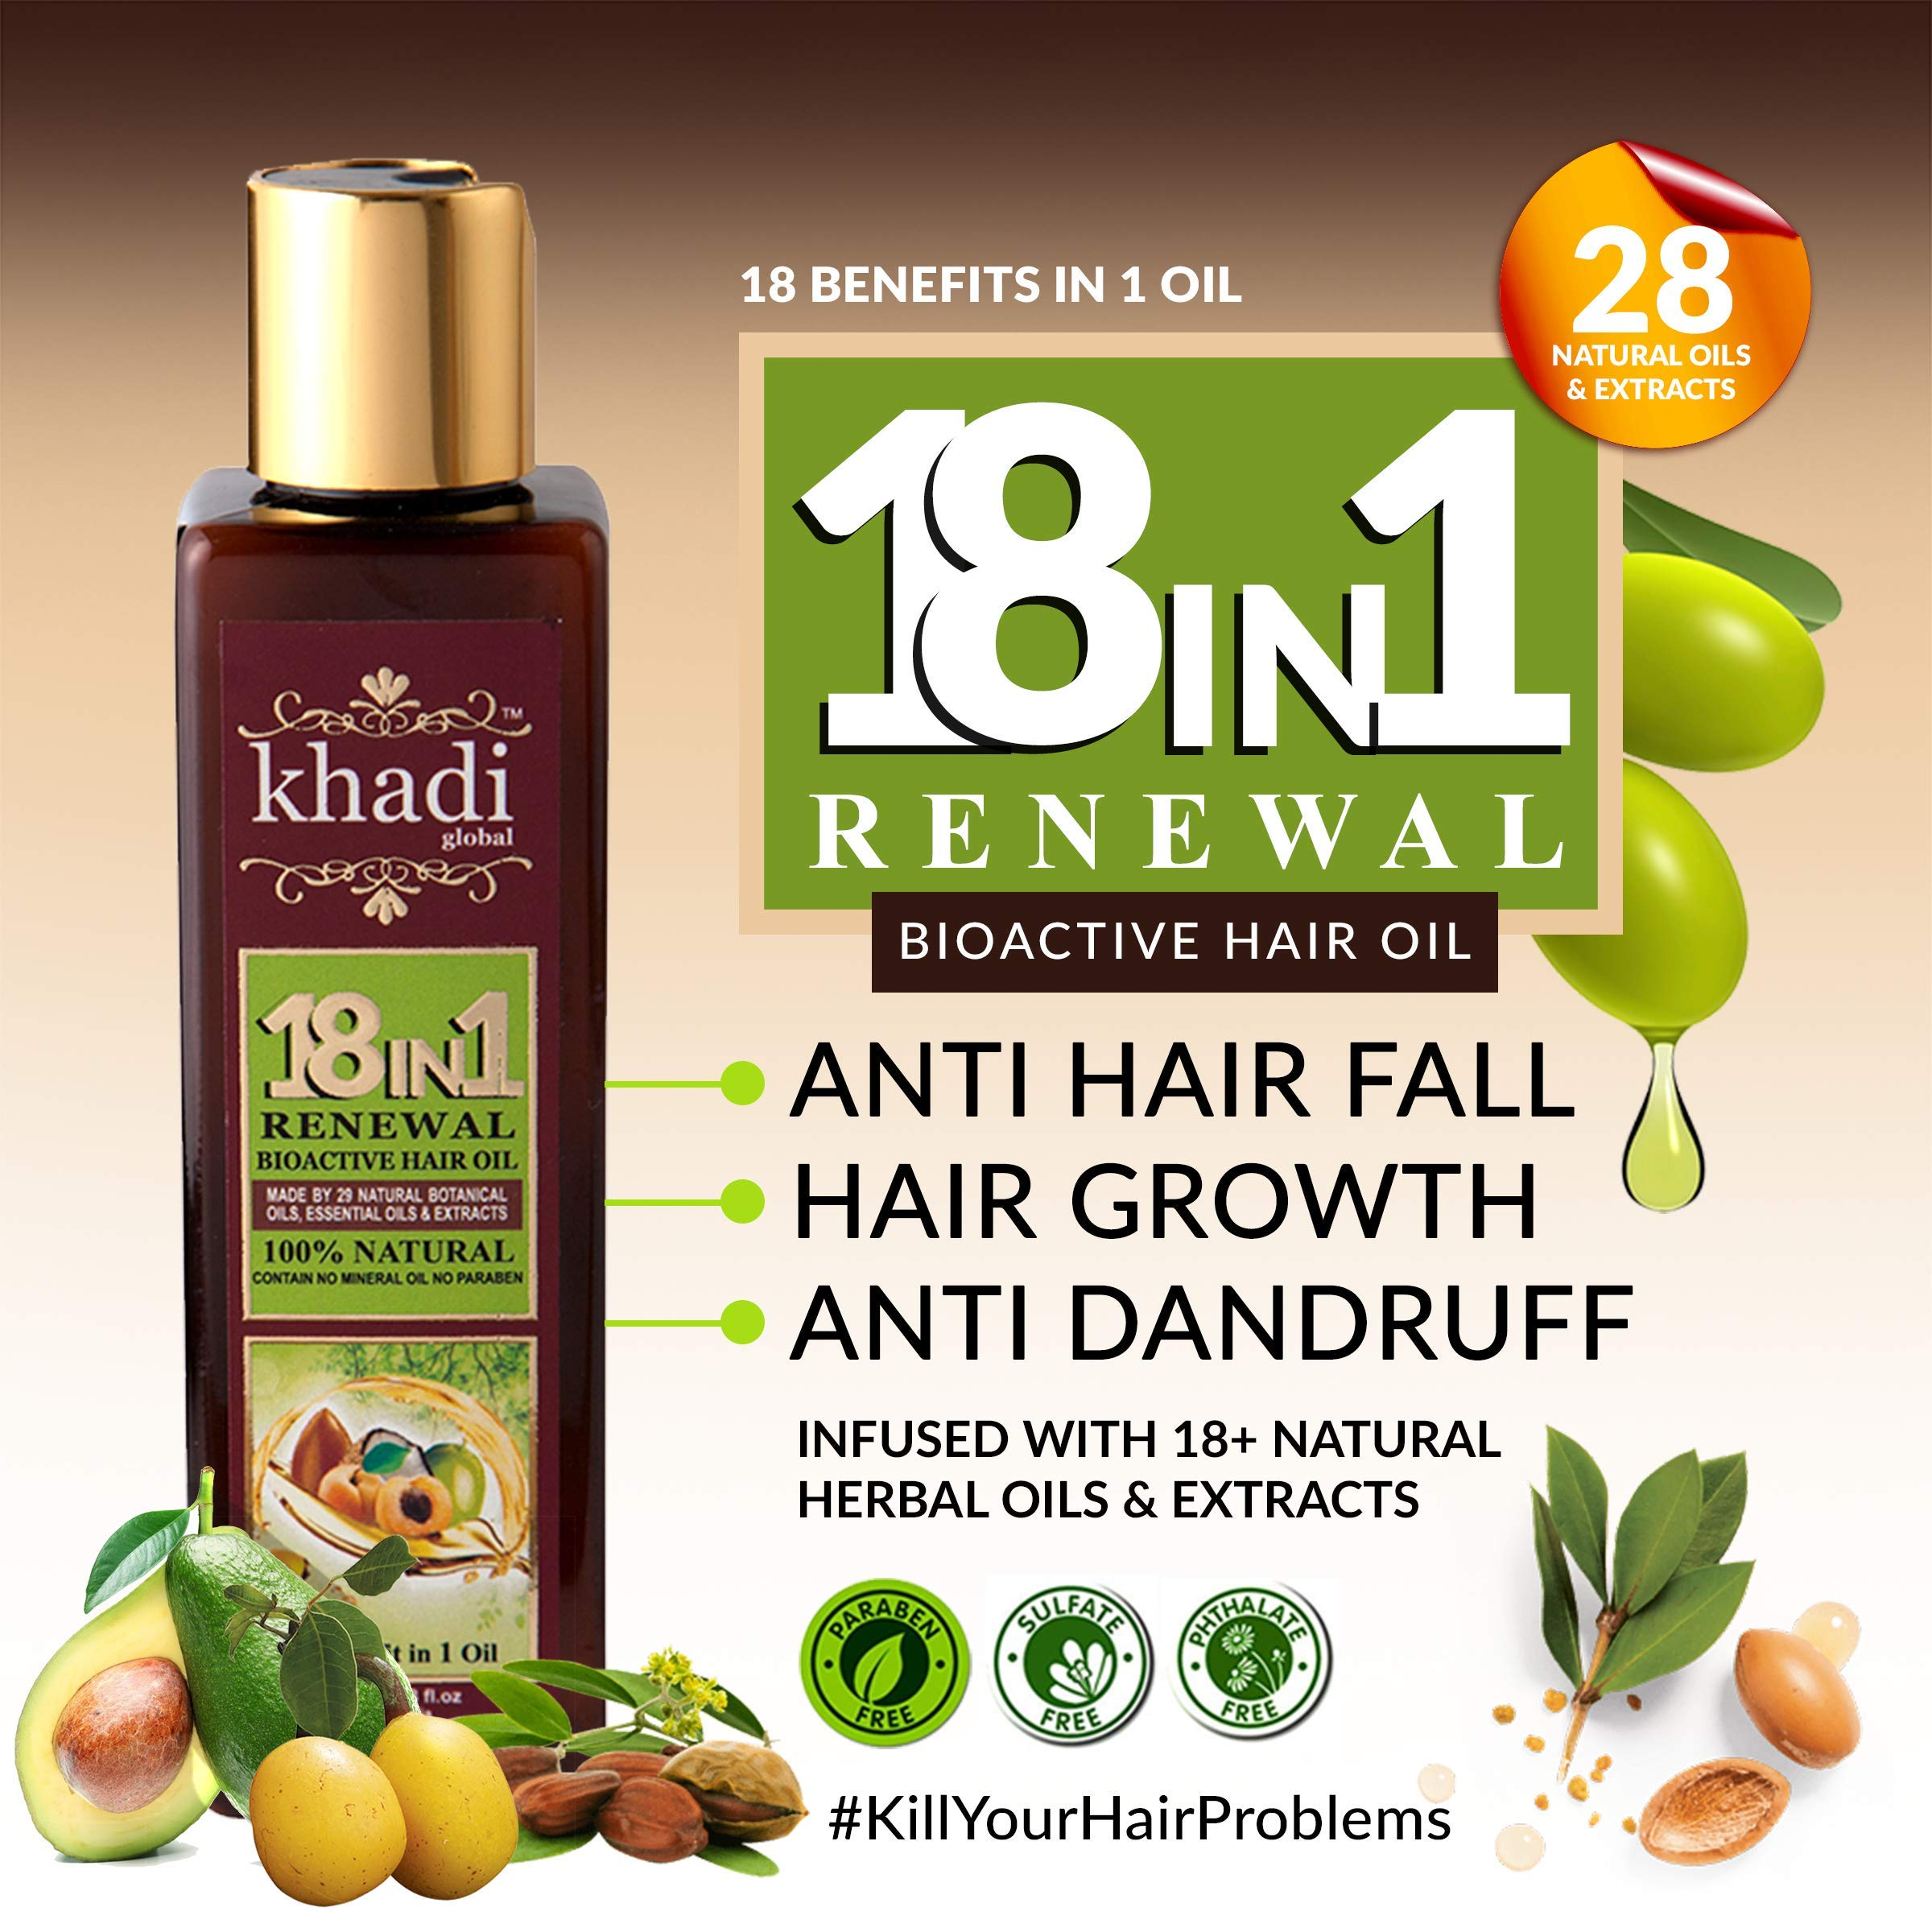 Khadi Global 18 In1 Renewal BioActive Hair Oil with 18+ Natural Herbal Oils and Extracts for All Type of Hair Problem (200 ml/6.76 fl.oz) product image